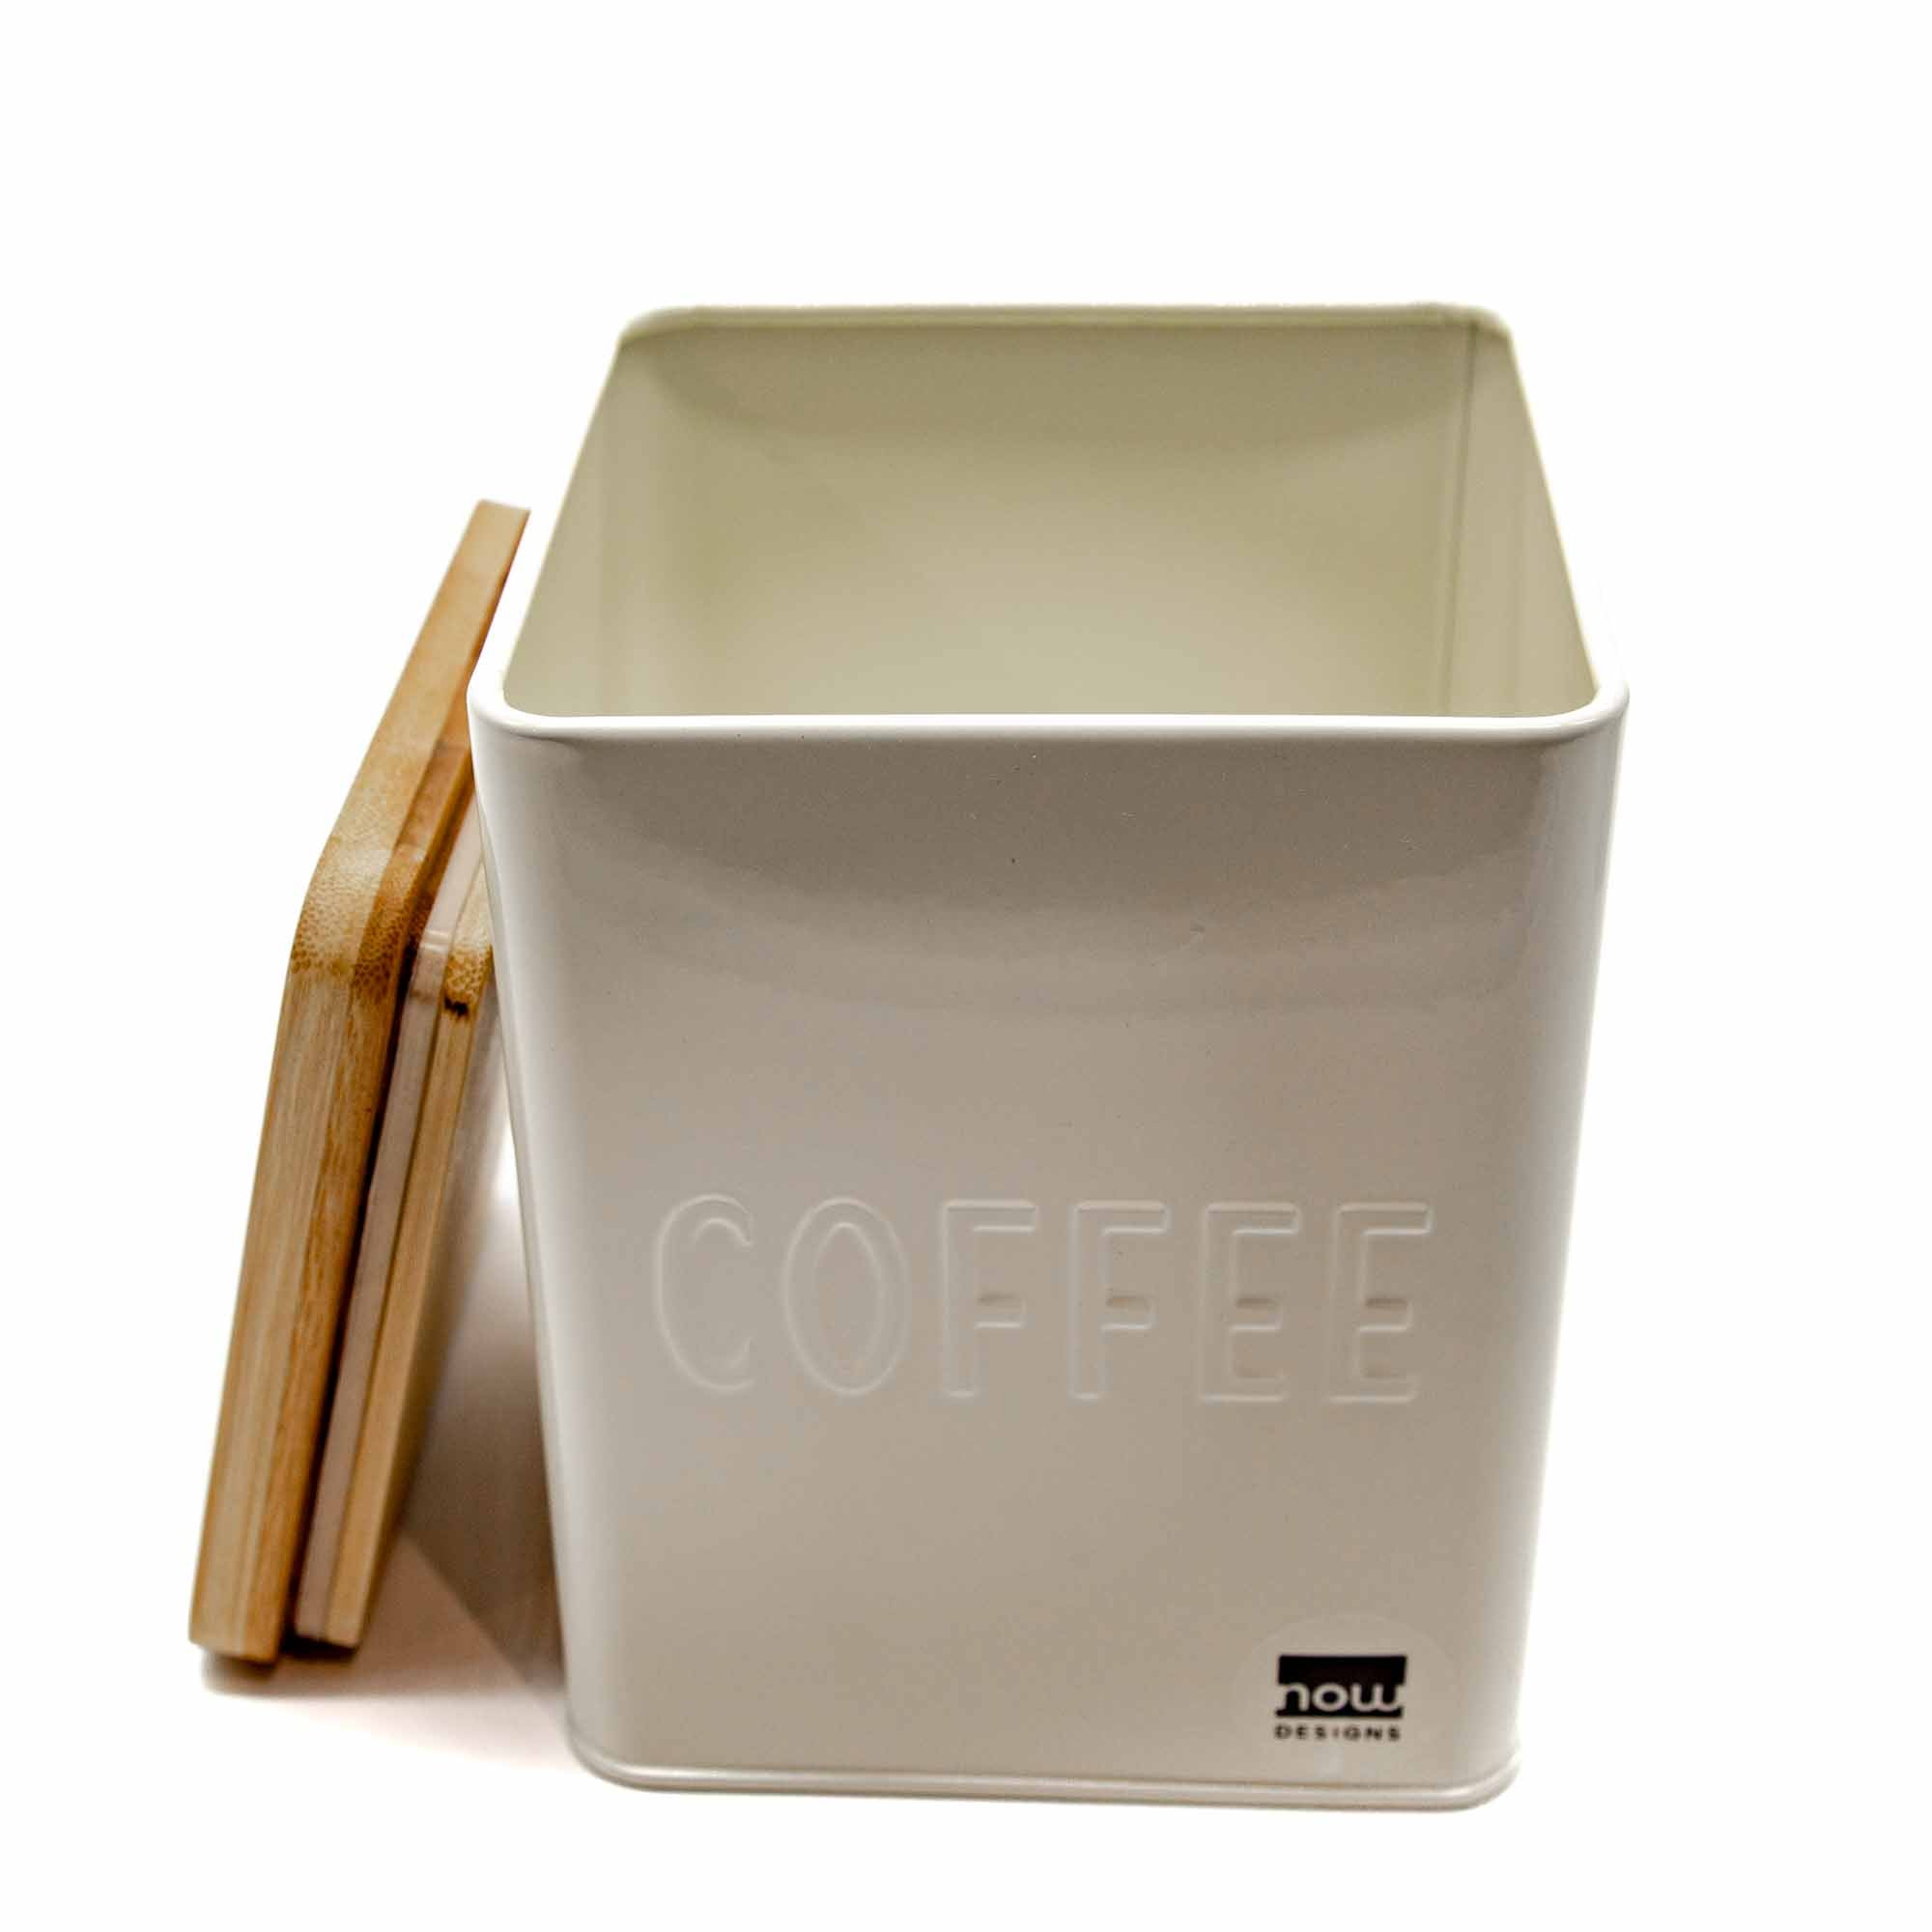 Diner Coffee Container - Mortise And Tenon